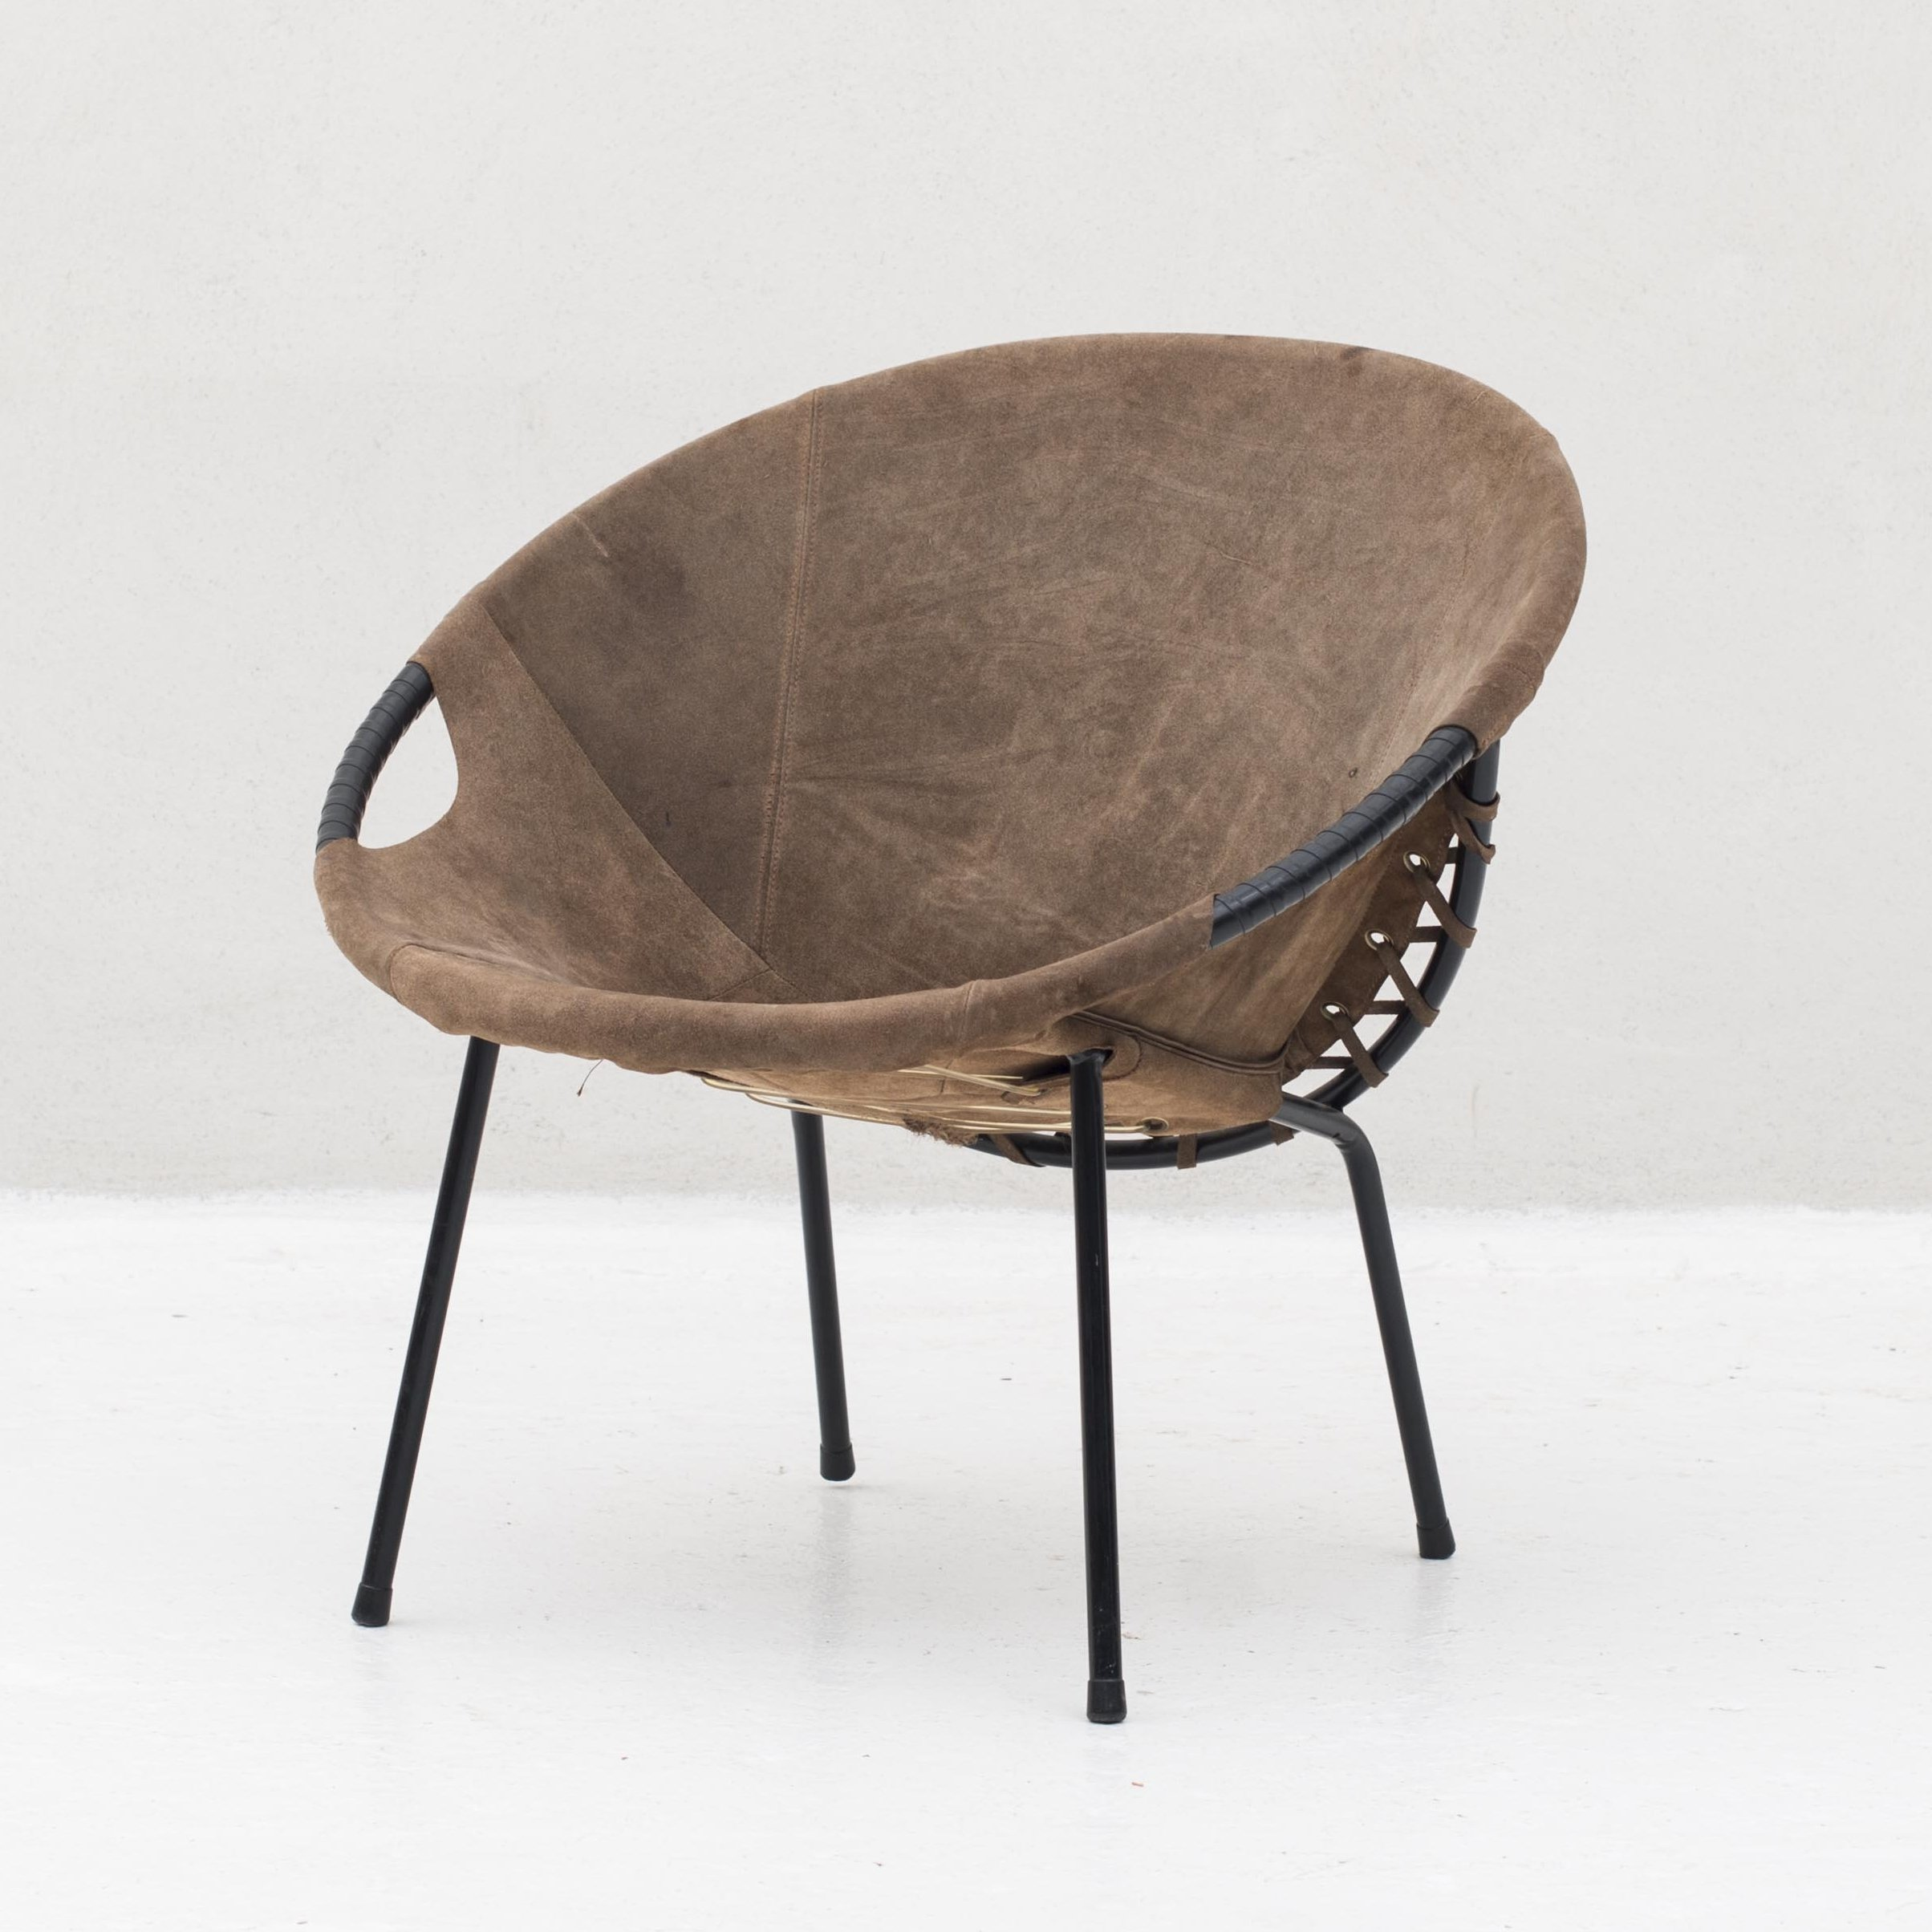 Delicieux Circle Balloon Chair In Metal U0026 Suede By Lusch Erzeugnis, Germany 1960s